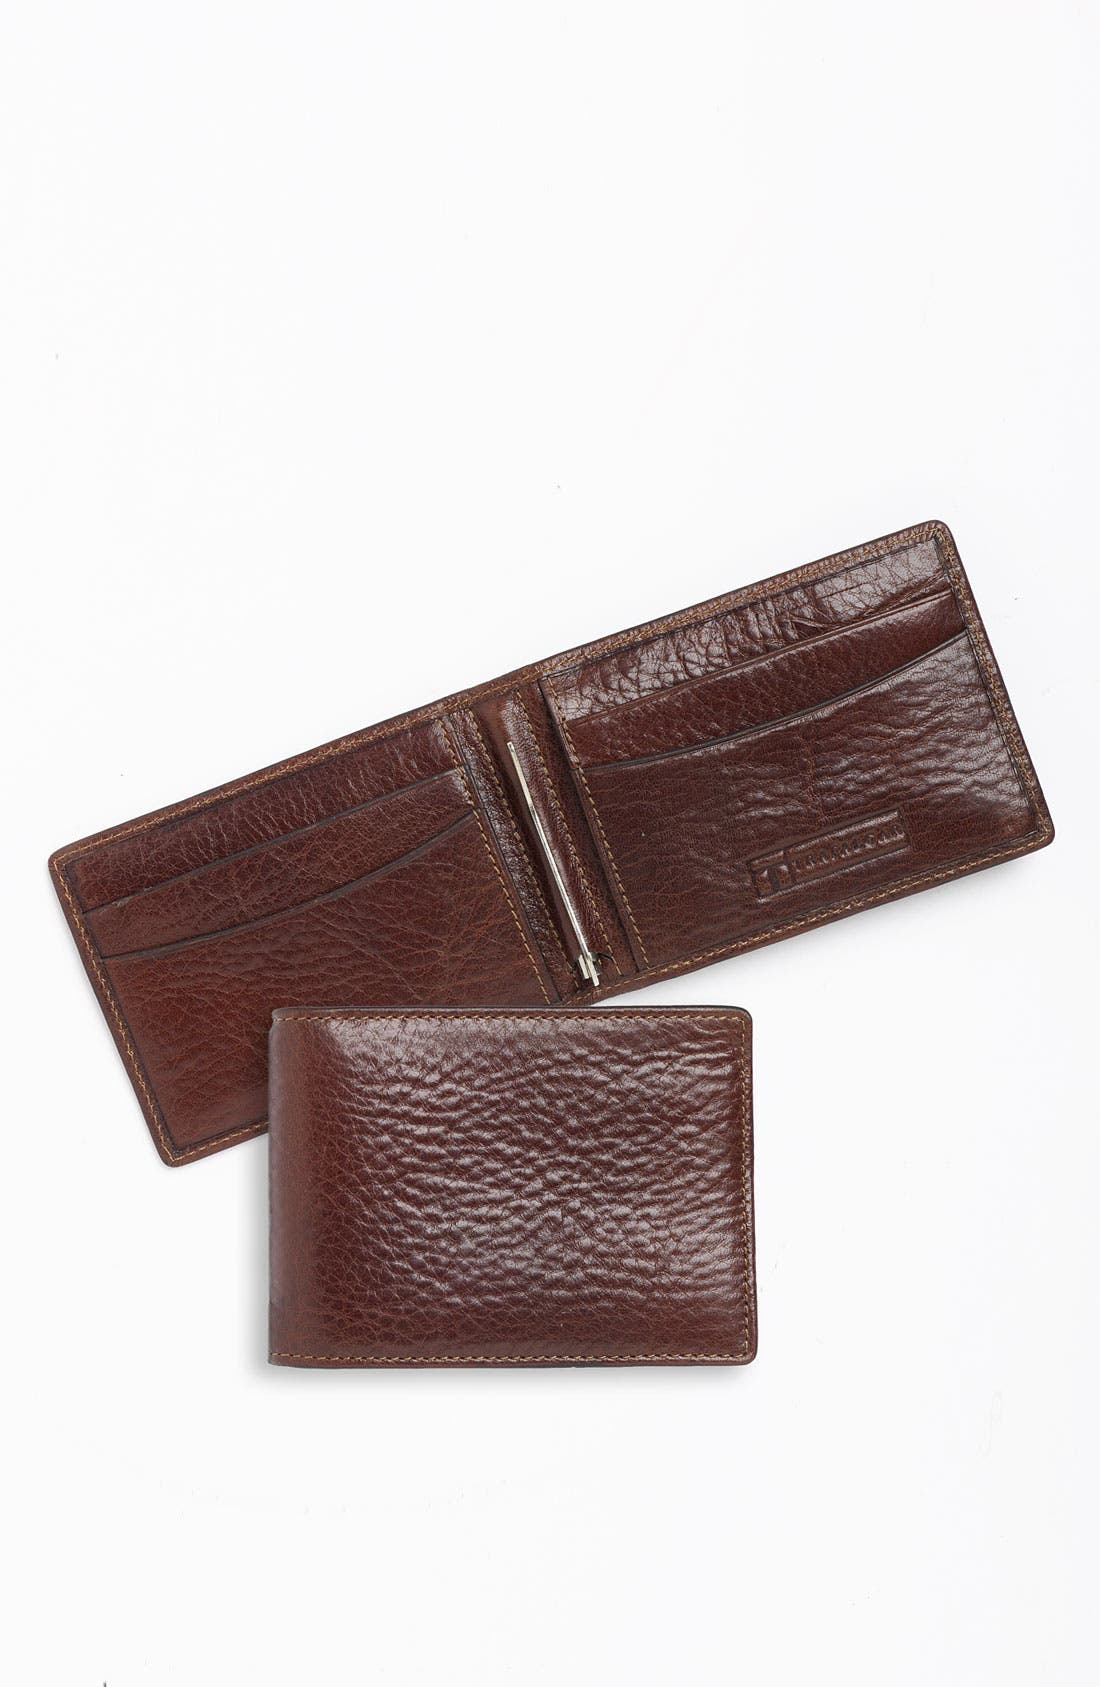 Alternate Image 1 Selected - Trafalgar 'Chesapeake' Bifold Wallet